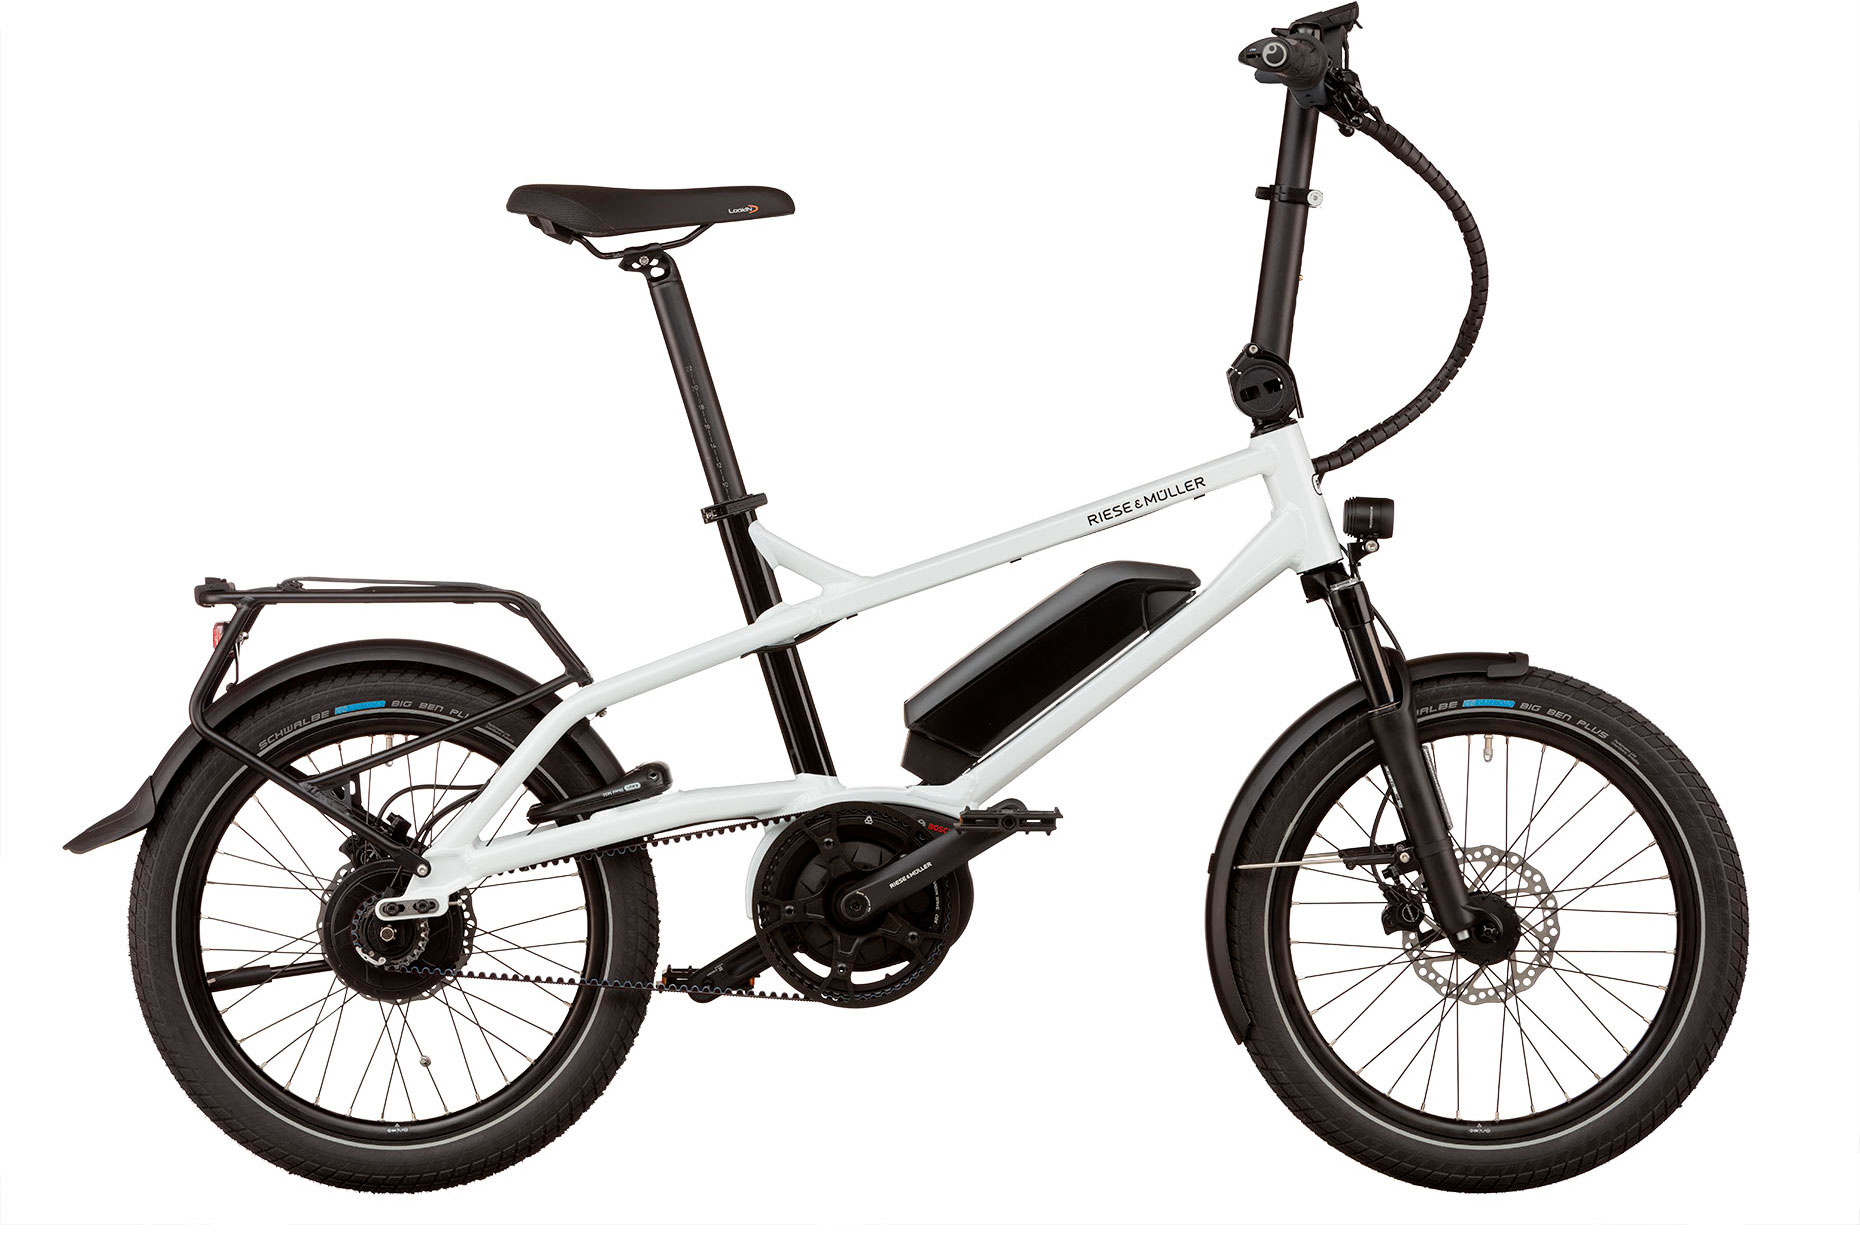 Riese und Müller Tinker Vario - incl. Thudbuster, RX Chip M/L